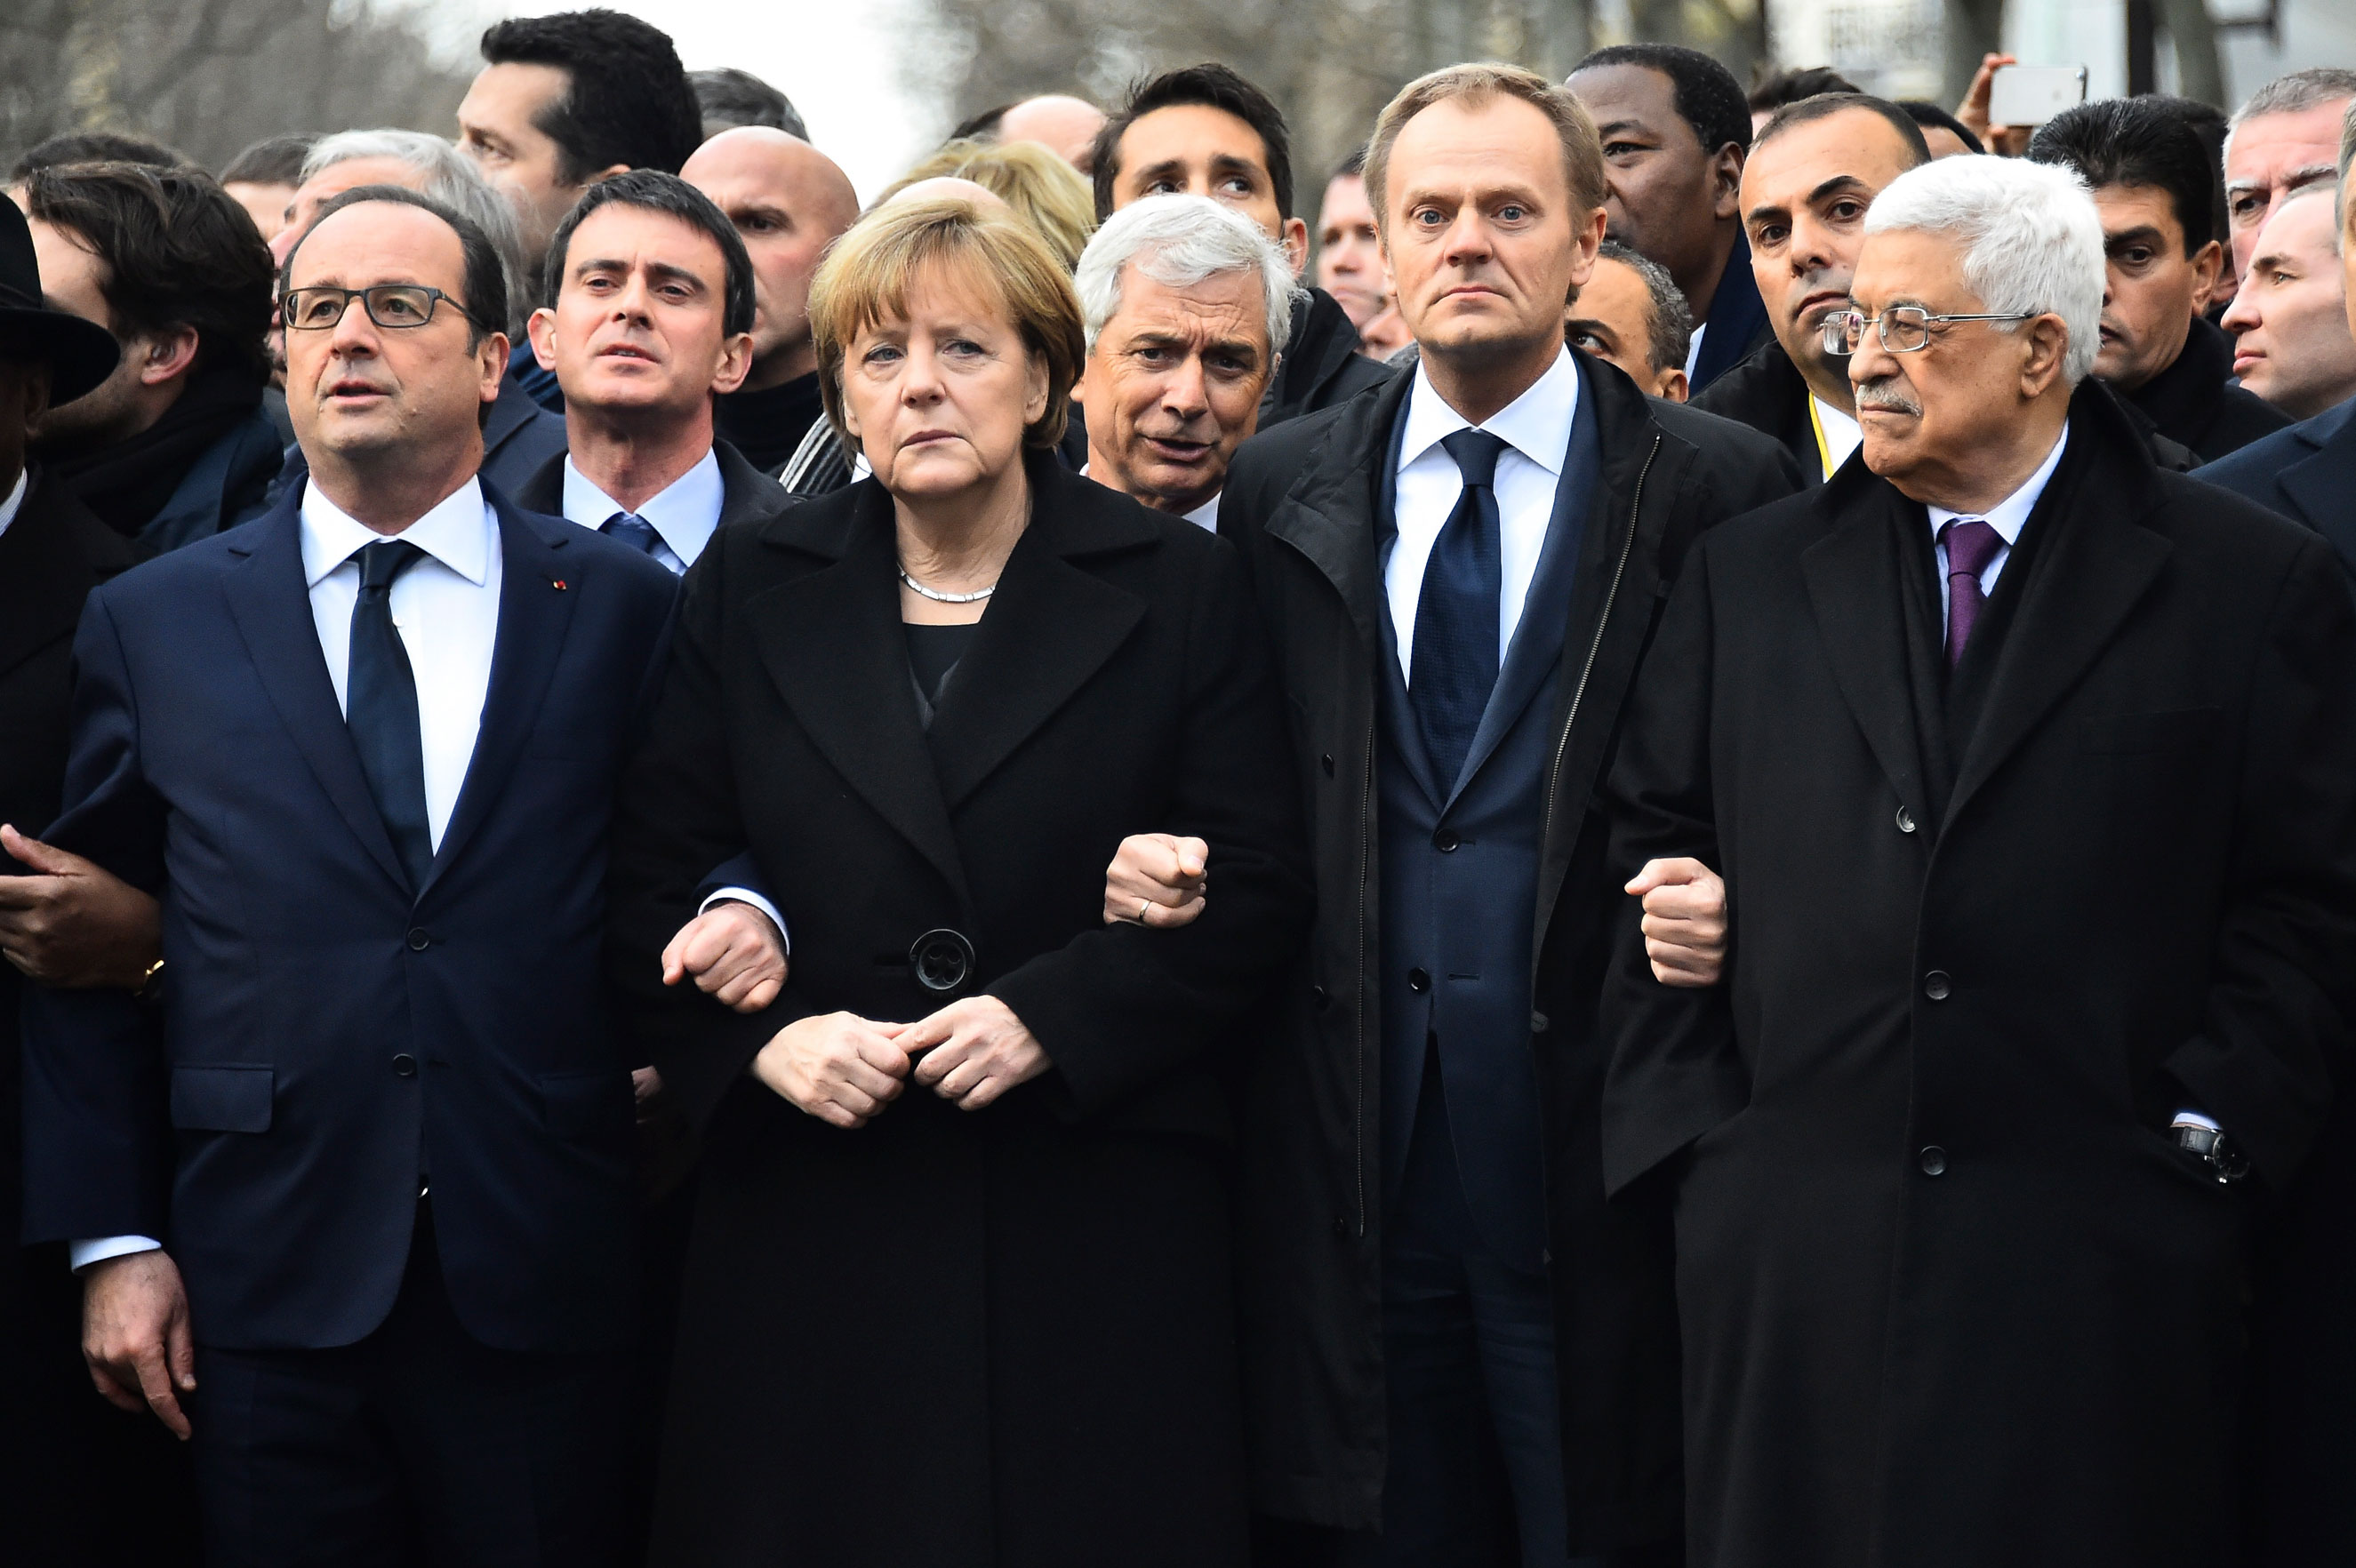 January: From left: French President Francois Hollande, German Chancellor Angela Merkel, President of the European Council Donald Tusk, Palestinian Authority President Mahmoud Abbas link arms during a silent march against terrorism in Paris on Jan. 11, 2015 following the attack on French satirical weekly Charlie Hebdo and a kosher supermarket.